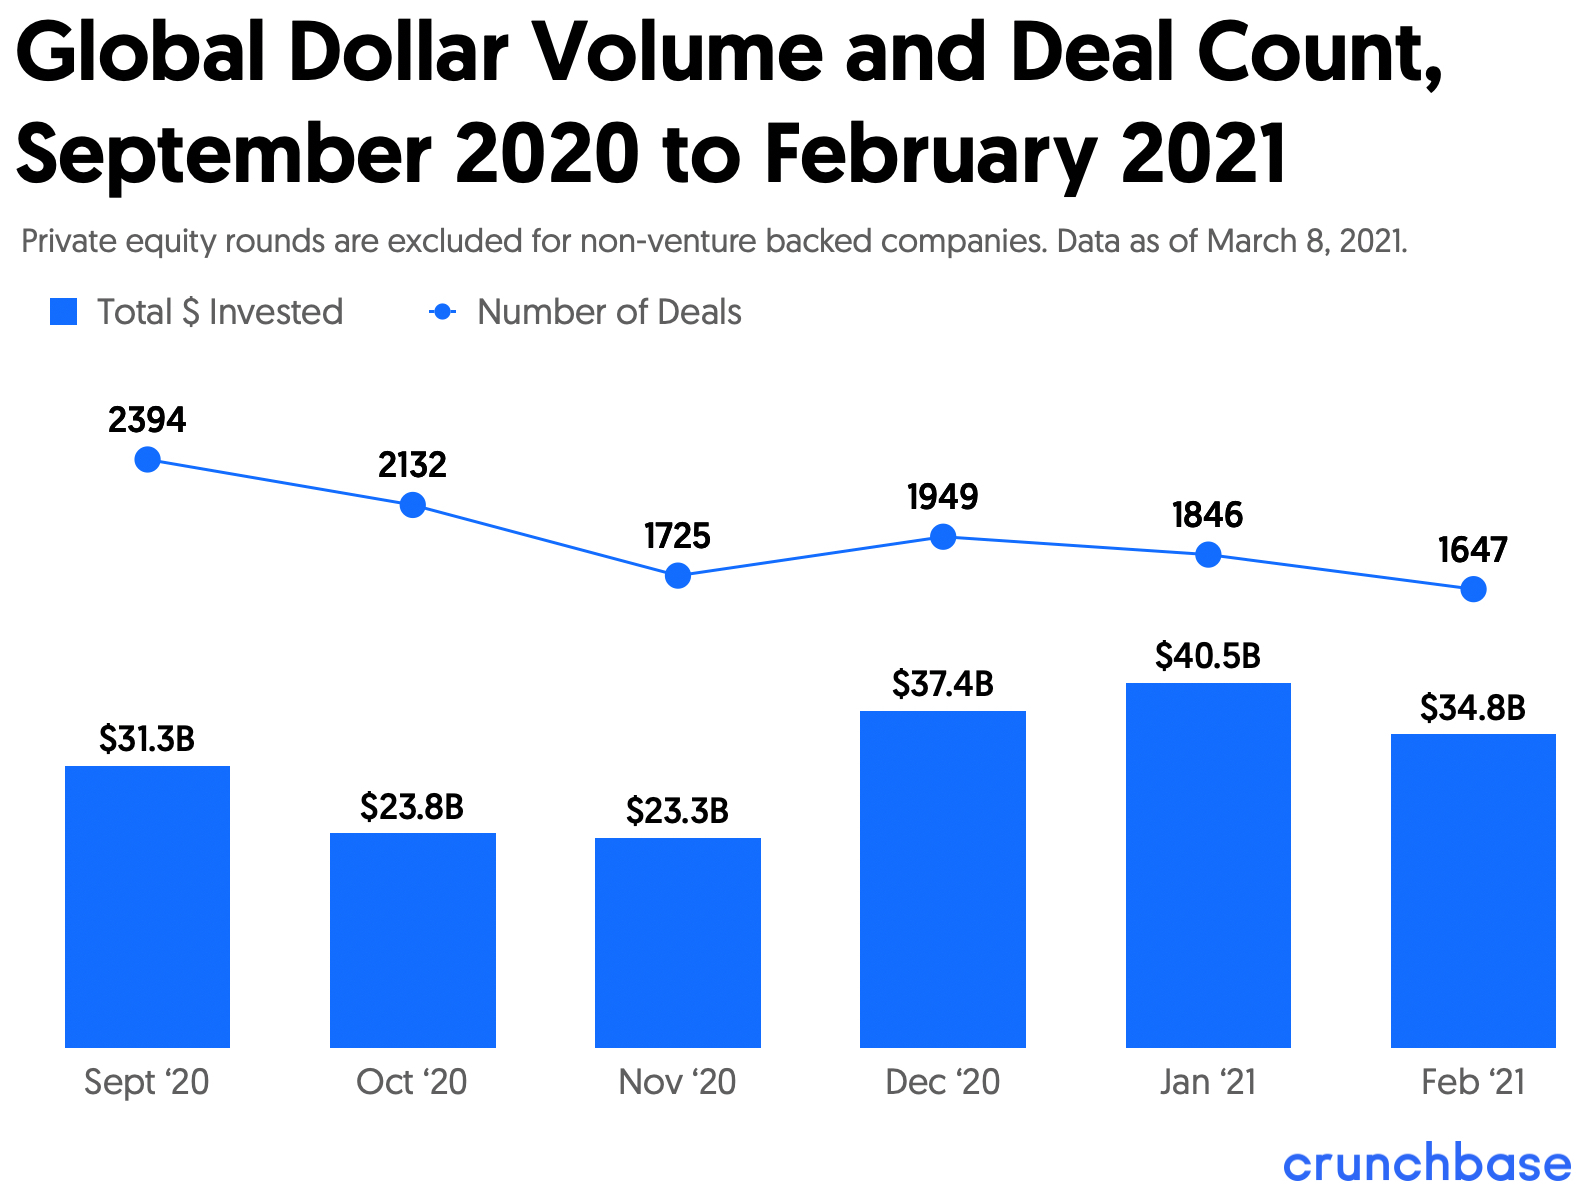 investment deals and total funding in September 2020 through February 2021 chart